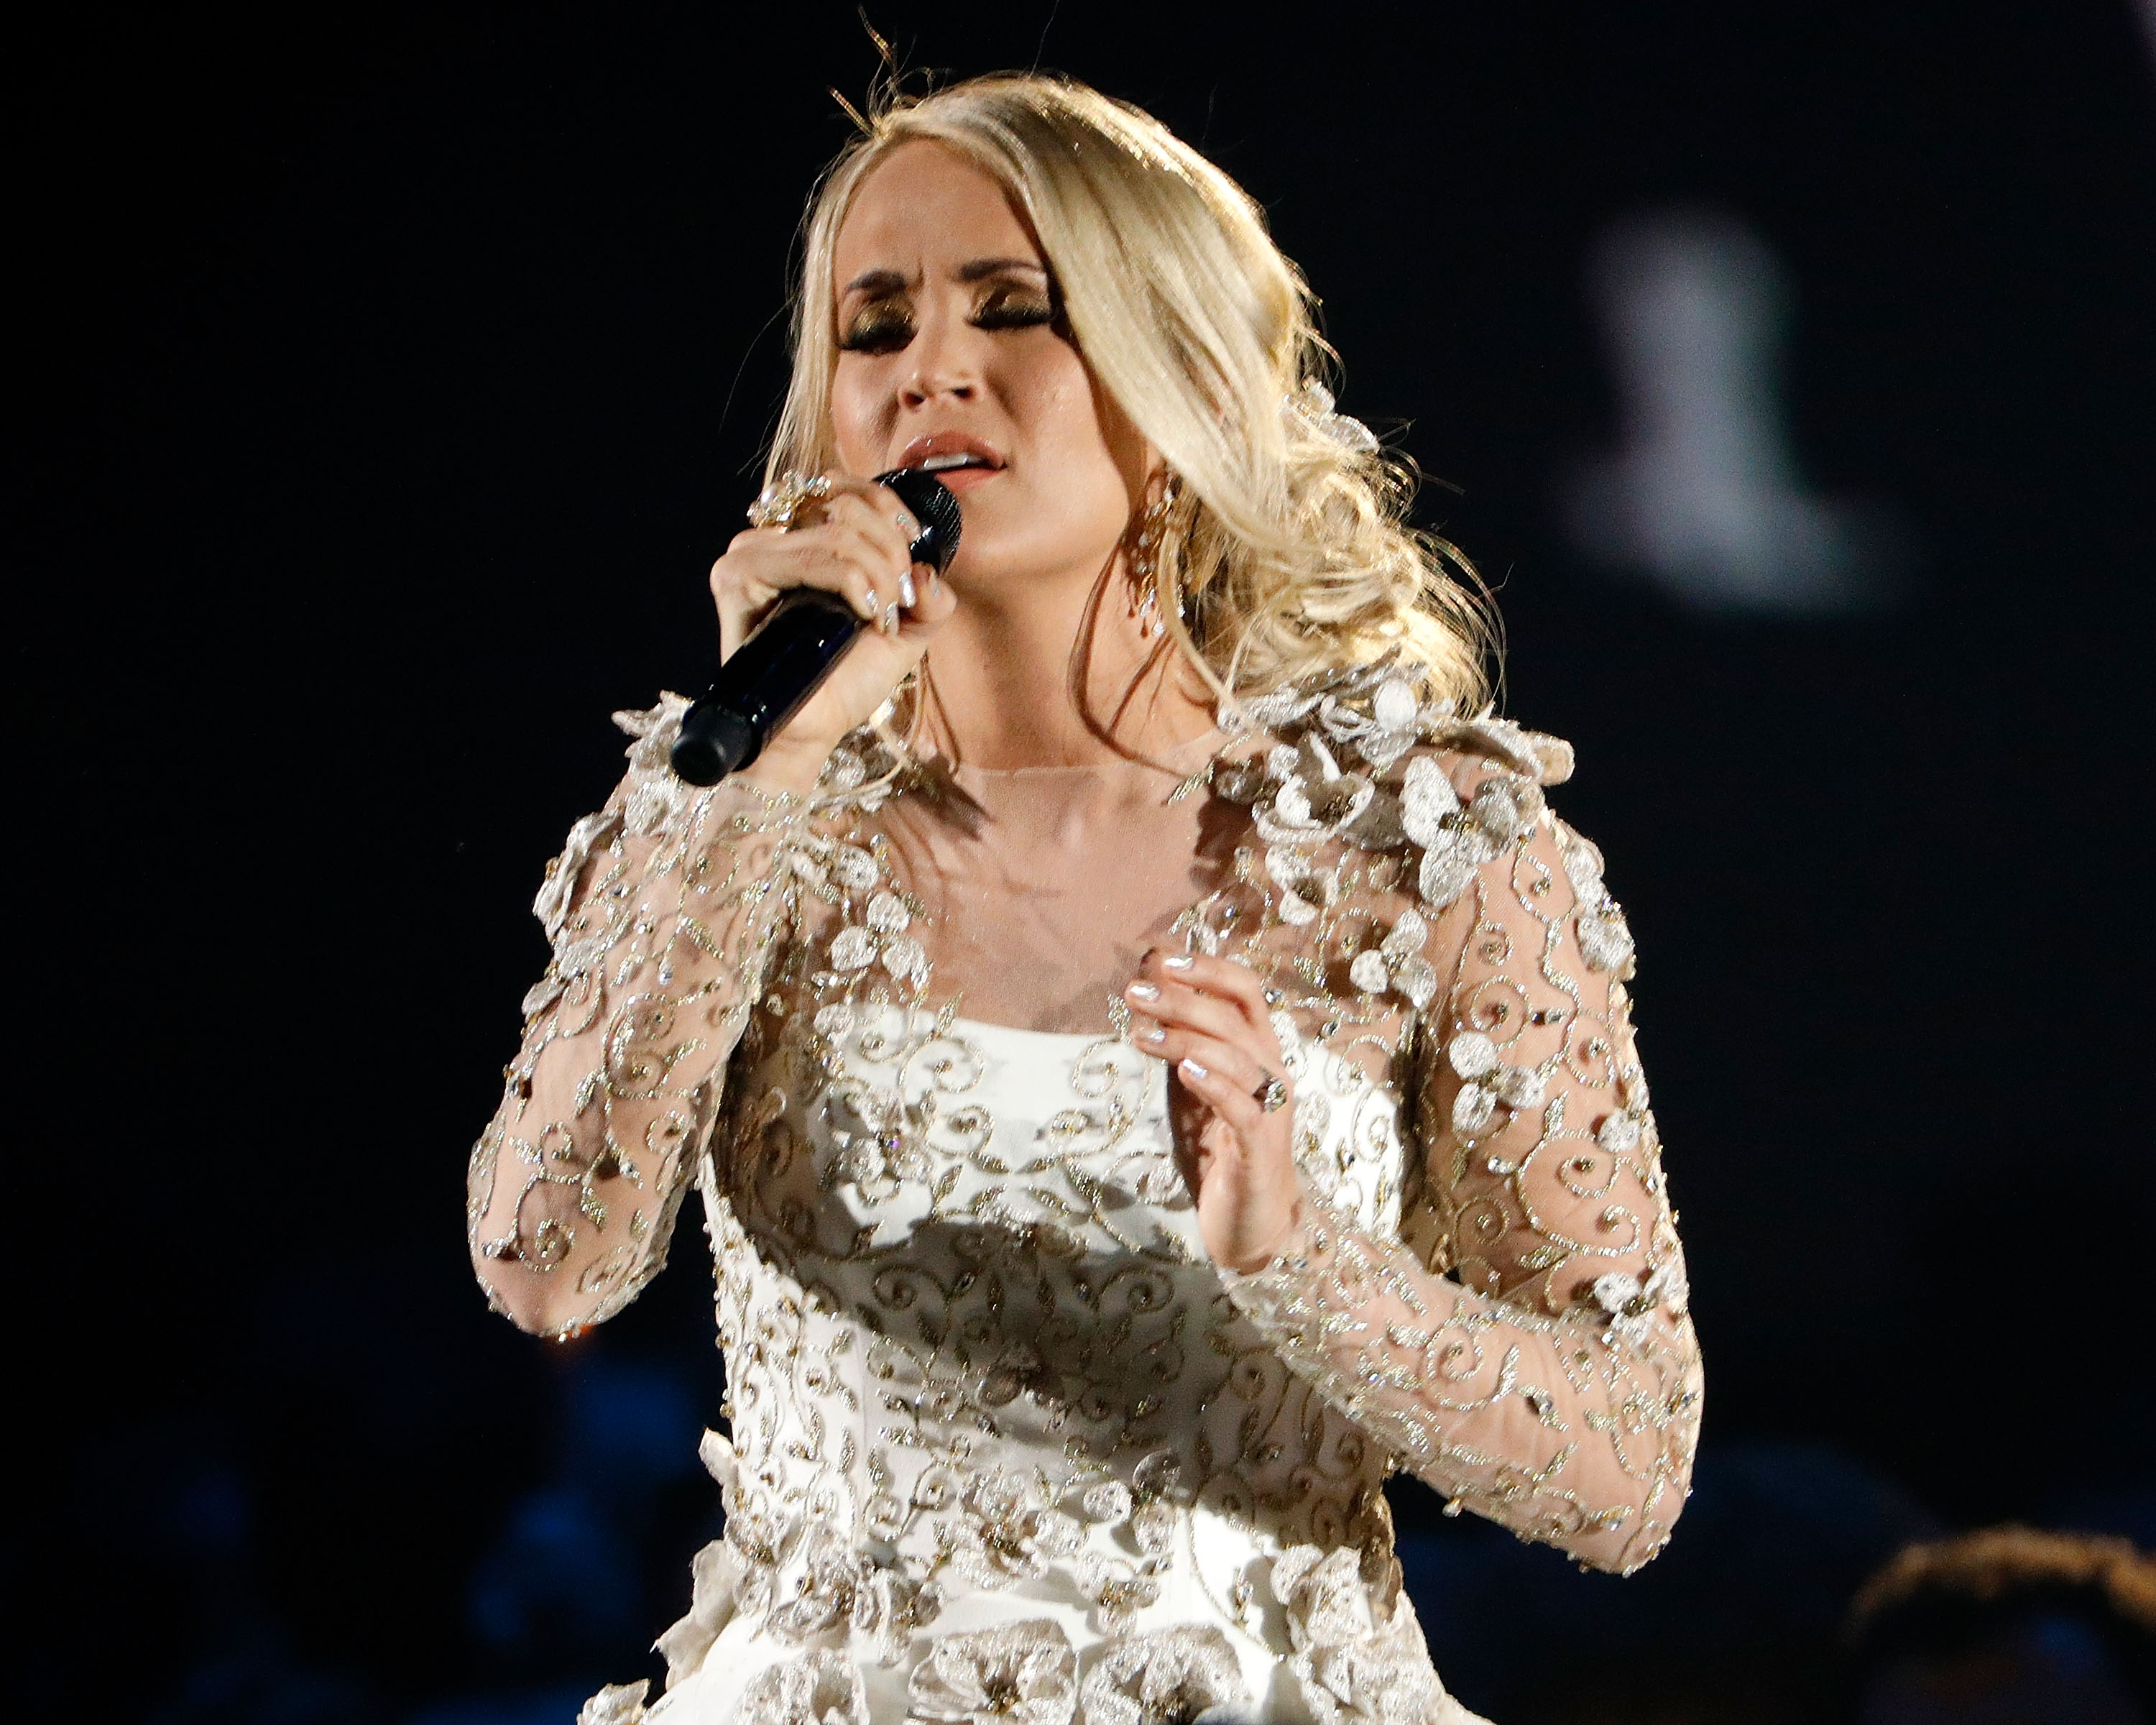 Carrie Underwood and Ludacris are the latest additions to Super Bowl 2018's entertainment lineup